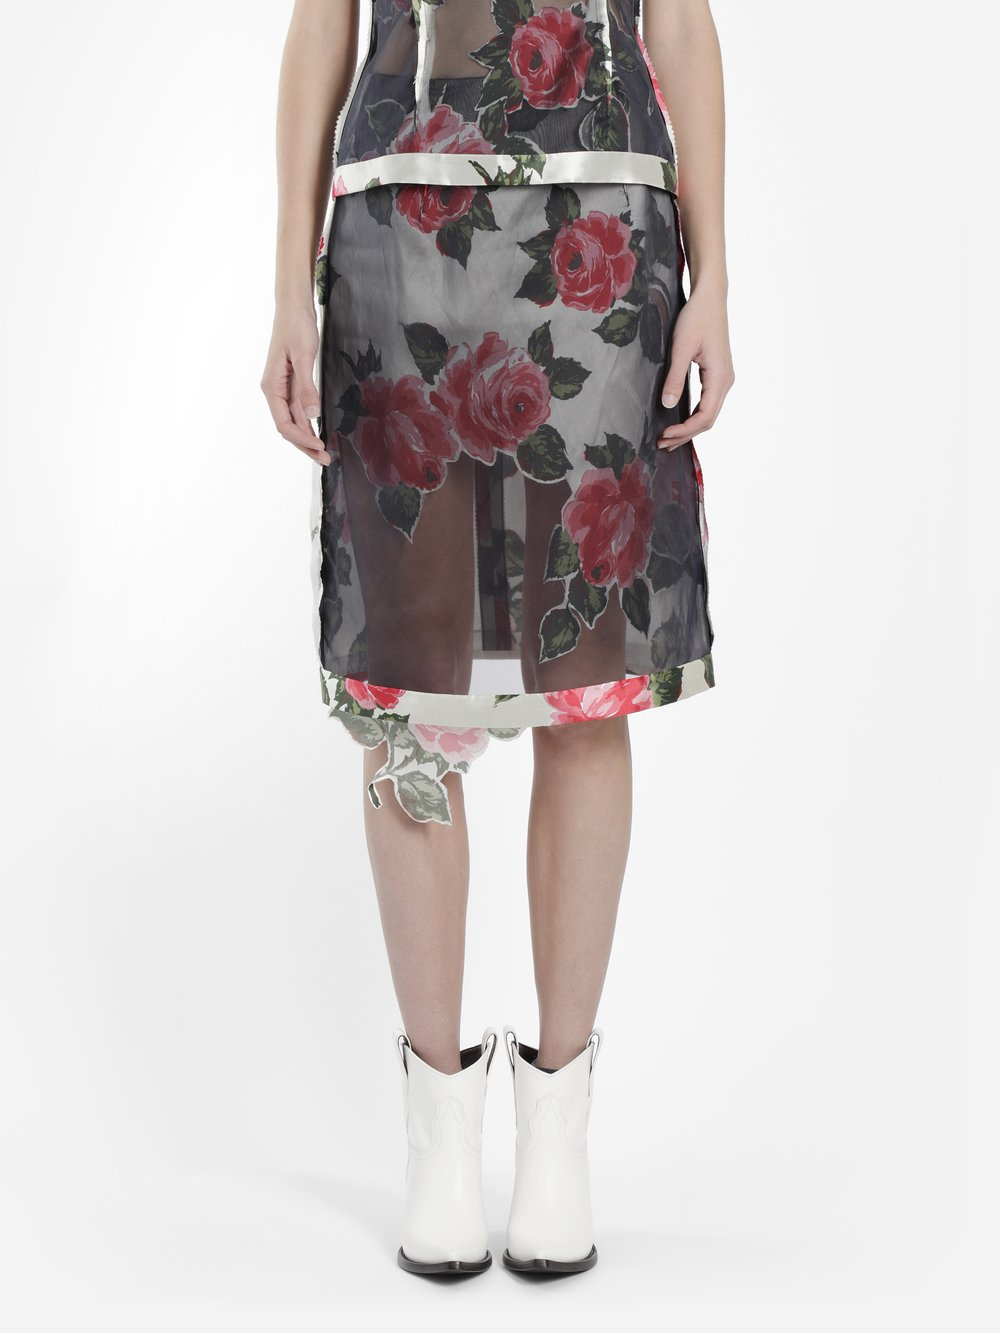 Maison Margiela Women'S Multicolor Organza Skirt With Roses Printed